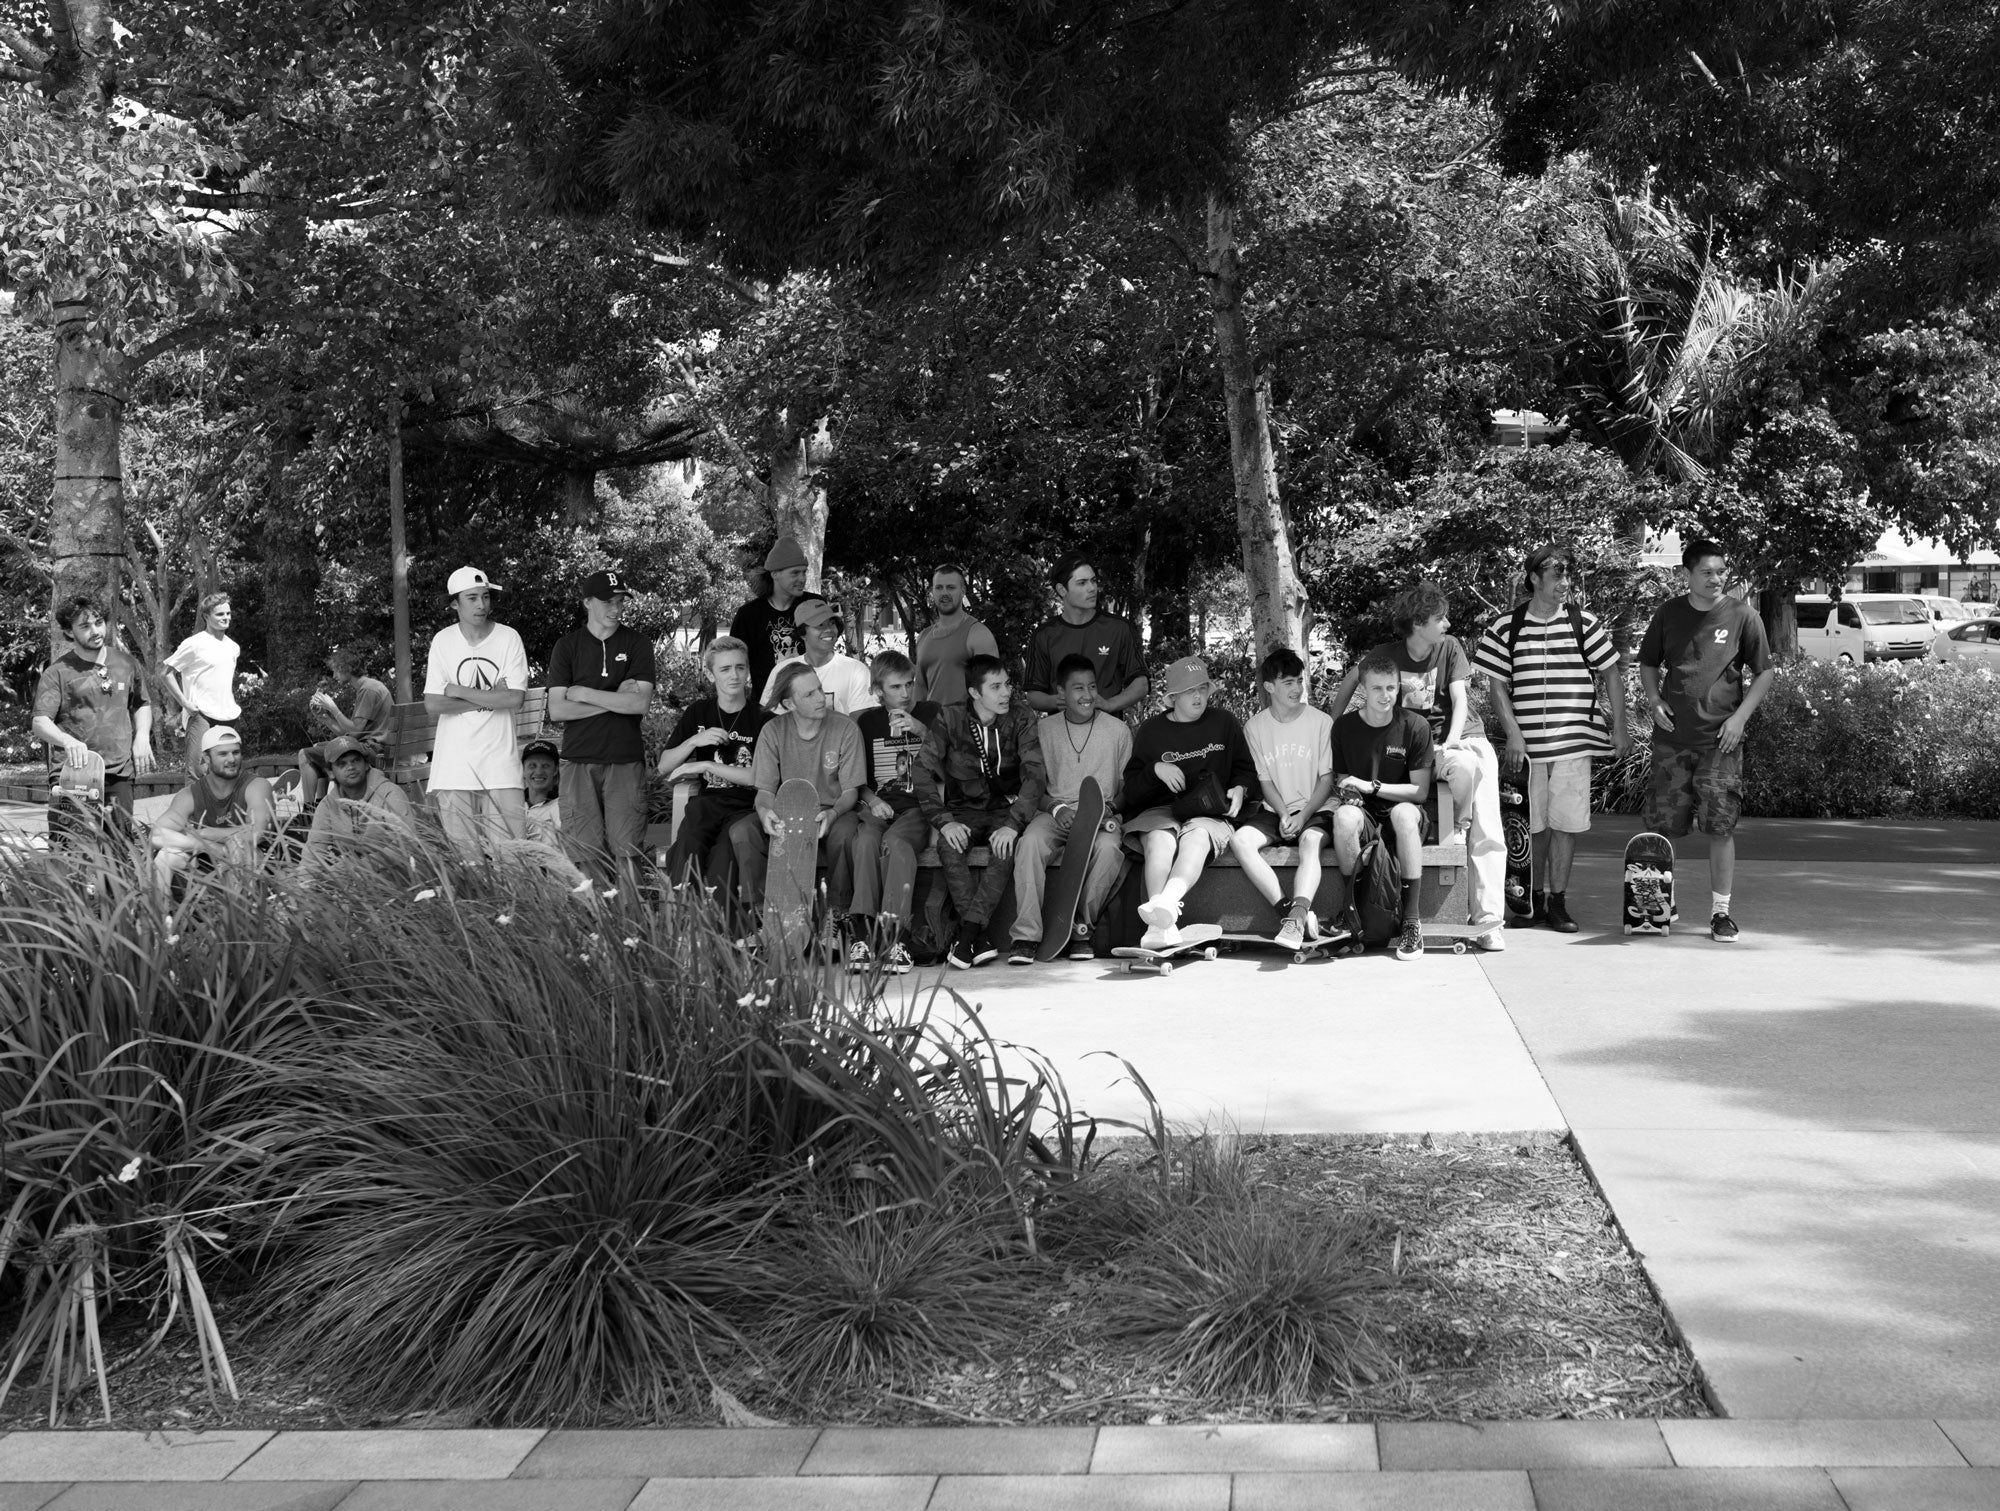 crowds watching skateboarding